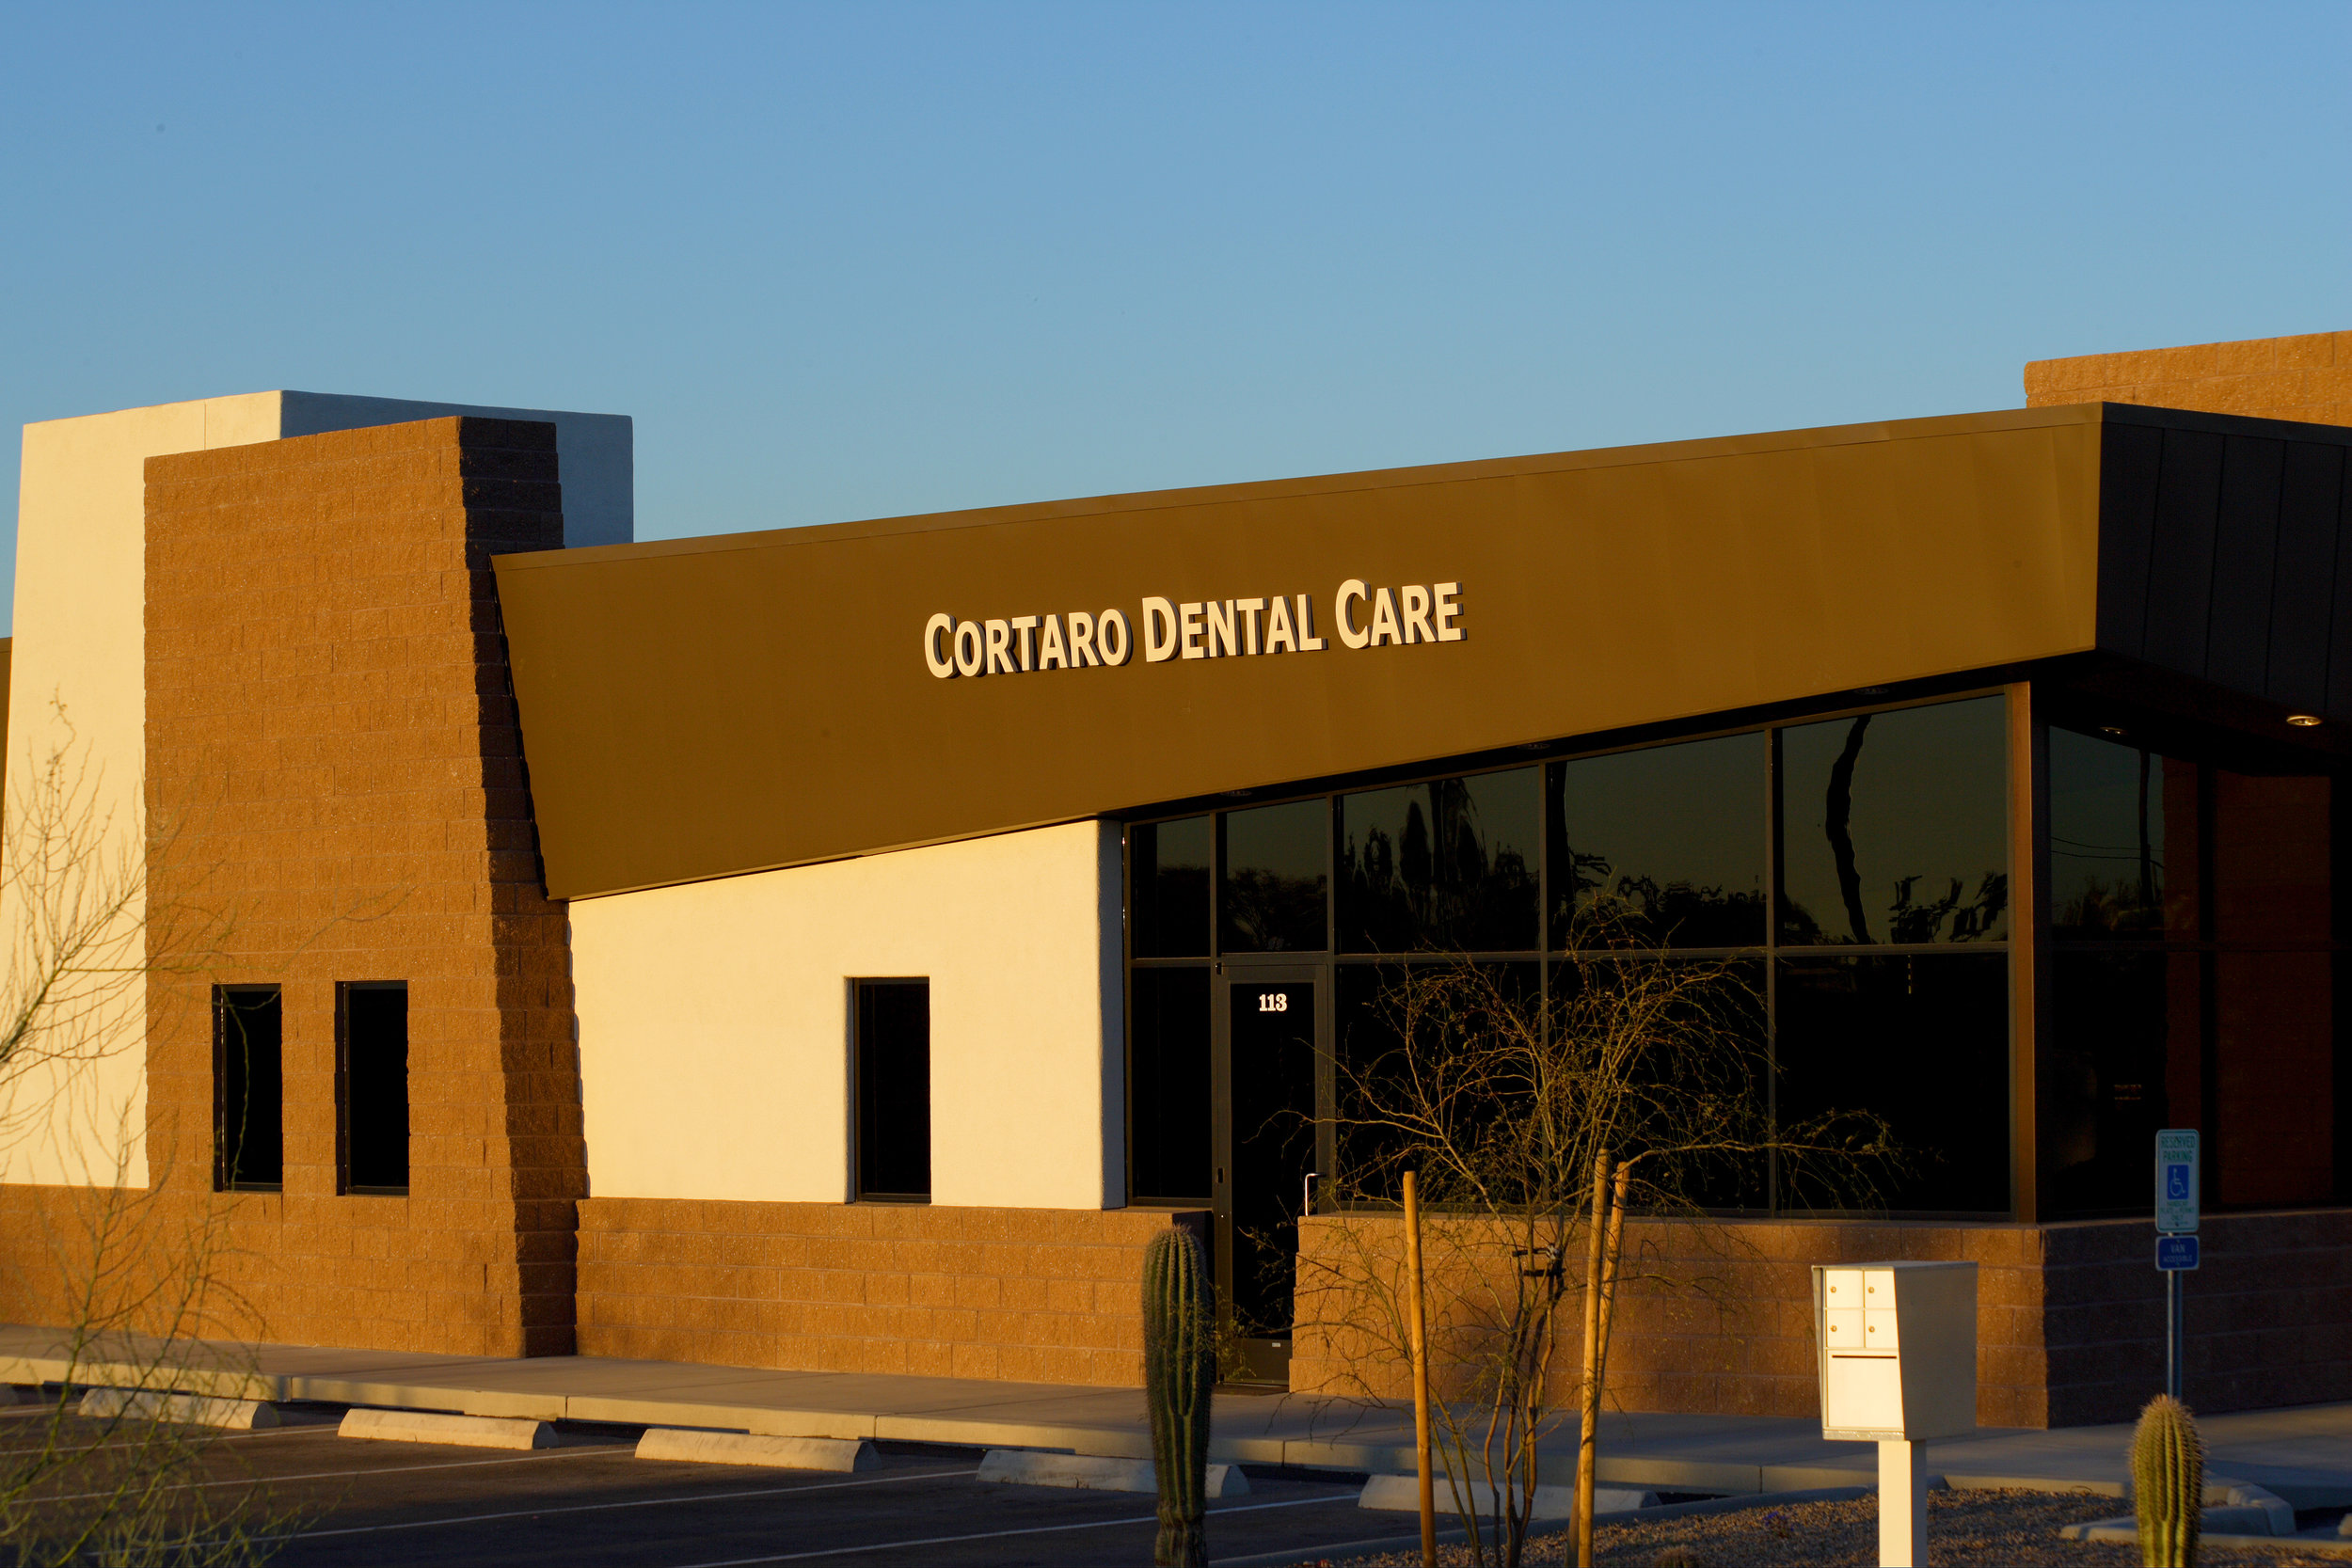 Cortaro Dental Care Photos 008.jpg